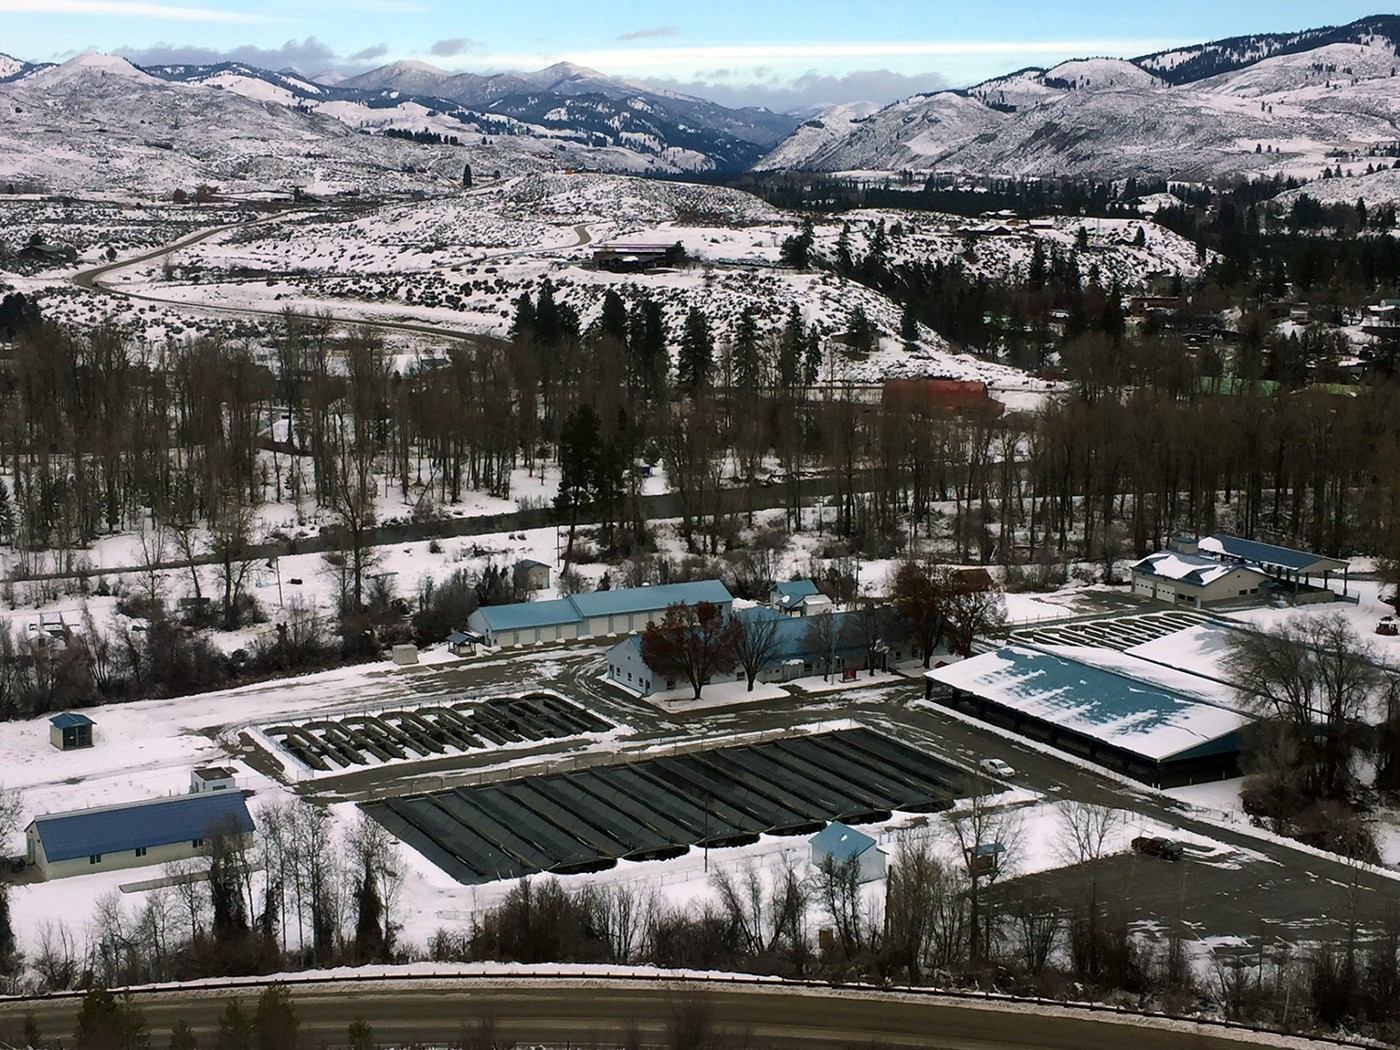 An aerial view above the Winthrop National Fish Hatchery in Washington covered in snow.